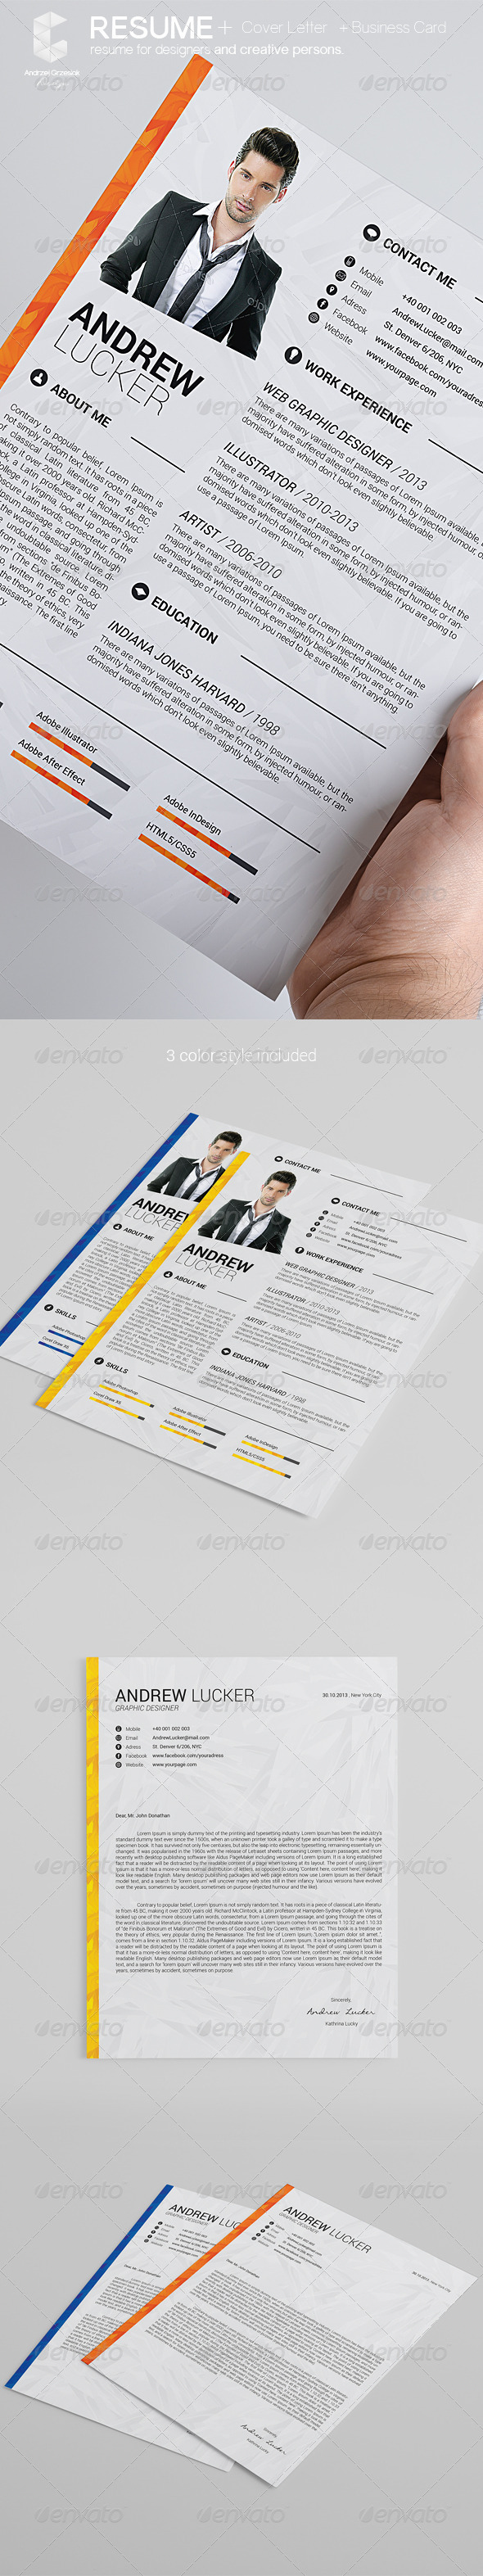 GraphicRiver Resume 5779144